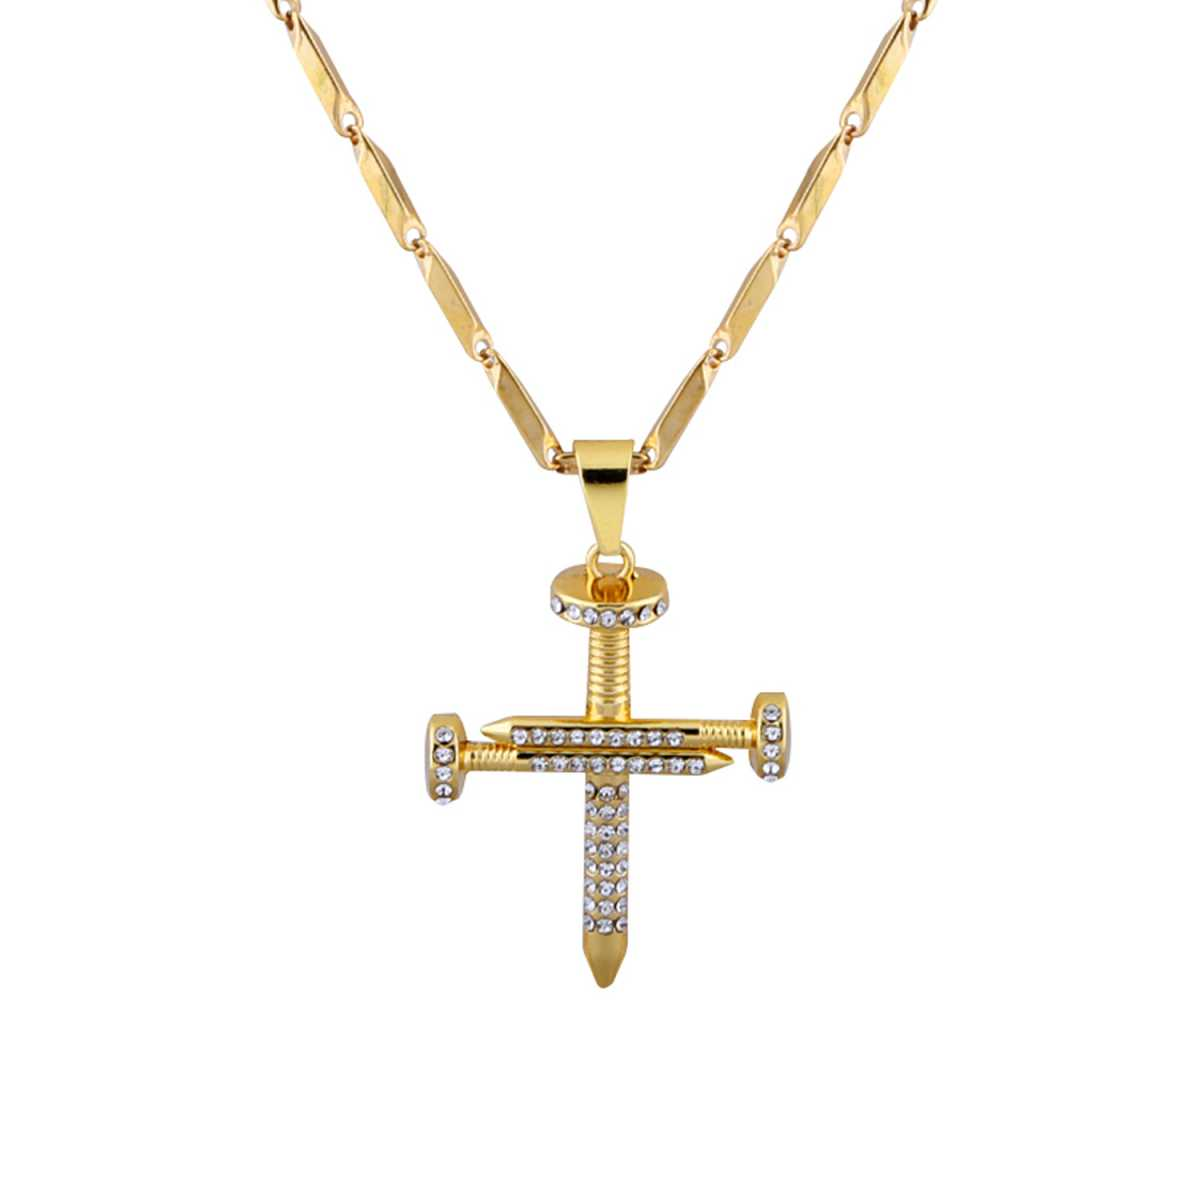 SilverPlated Adorable Chain With Cross pendant With Diamond Studded For Men and boy Jewellery